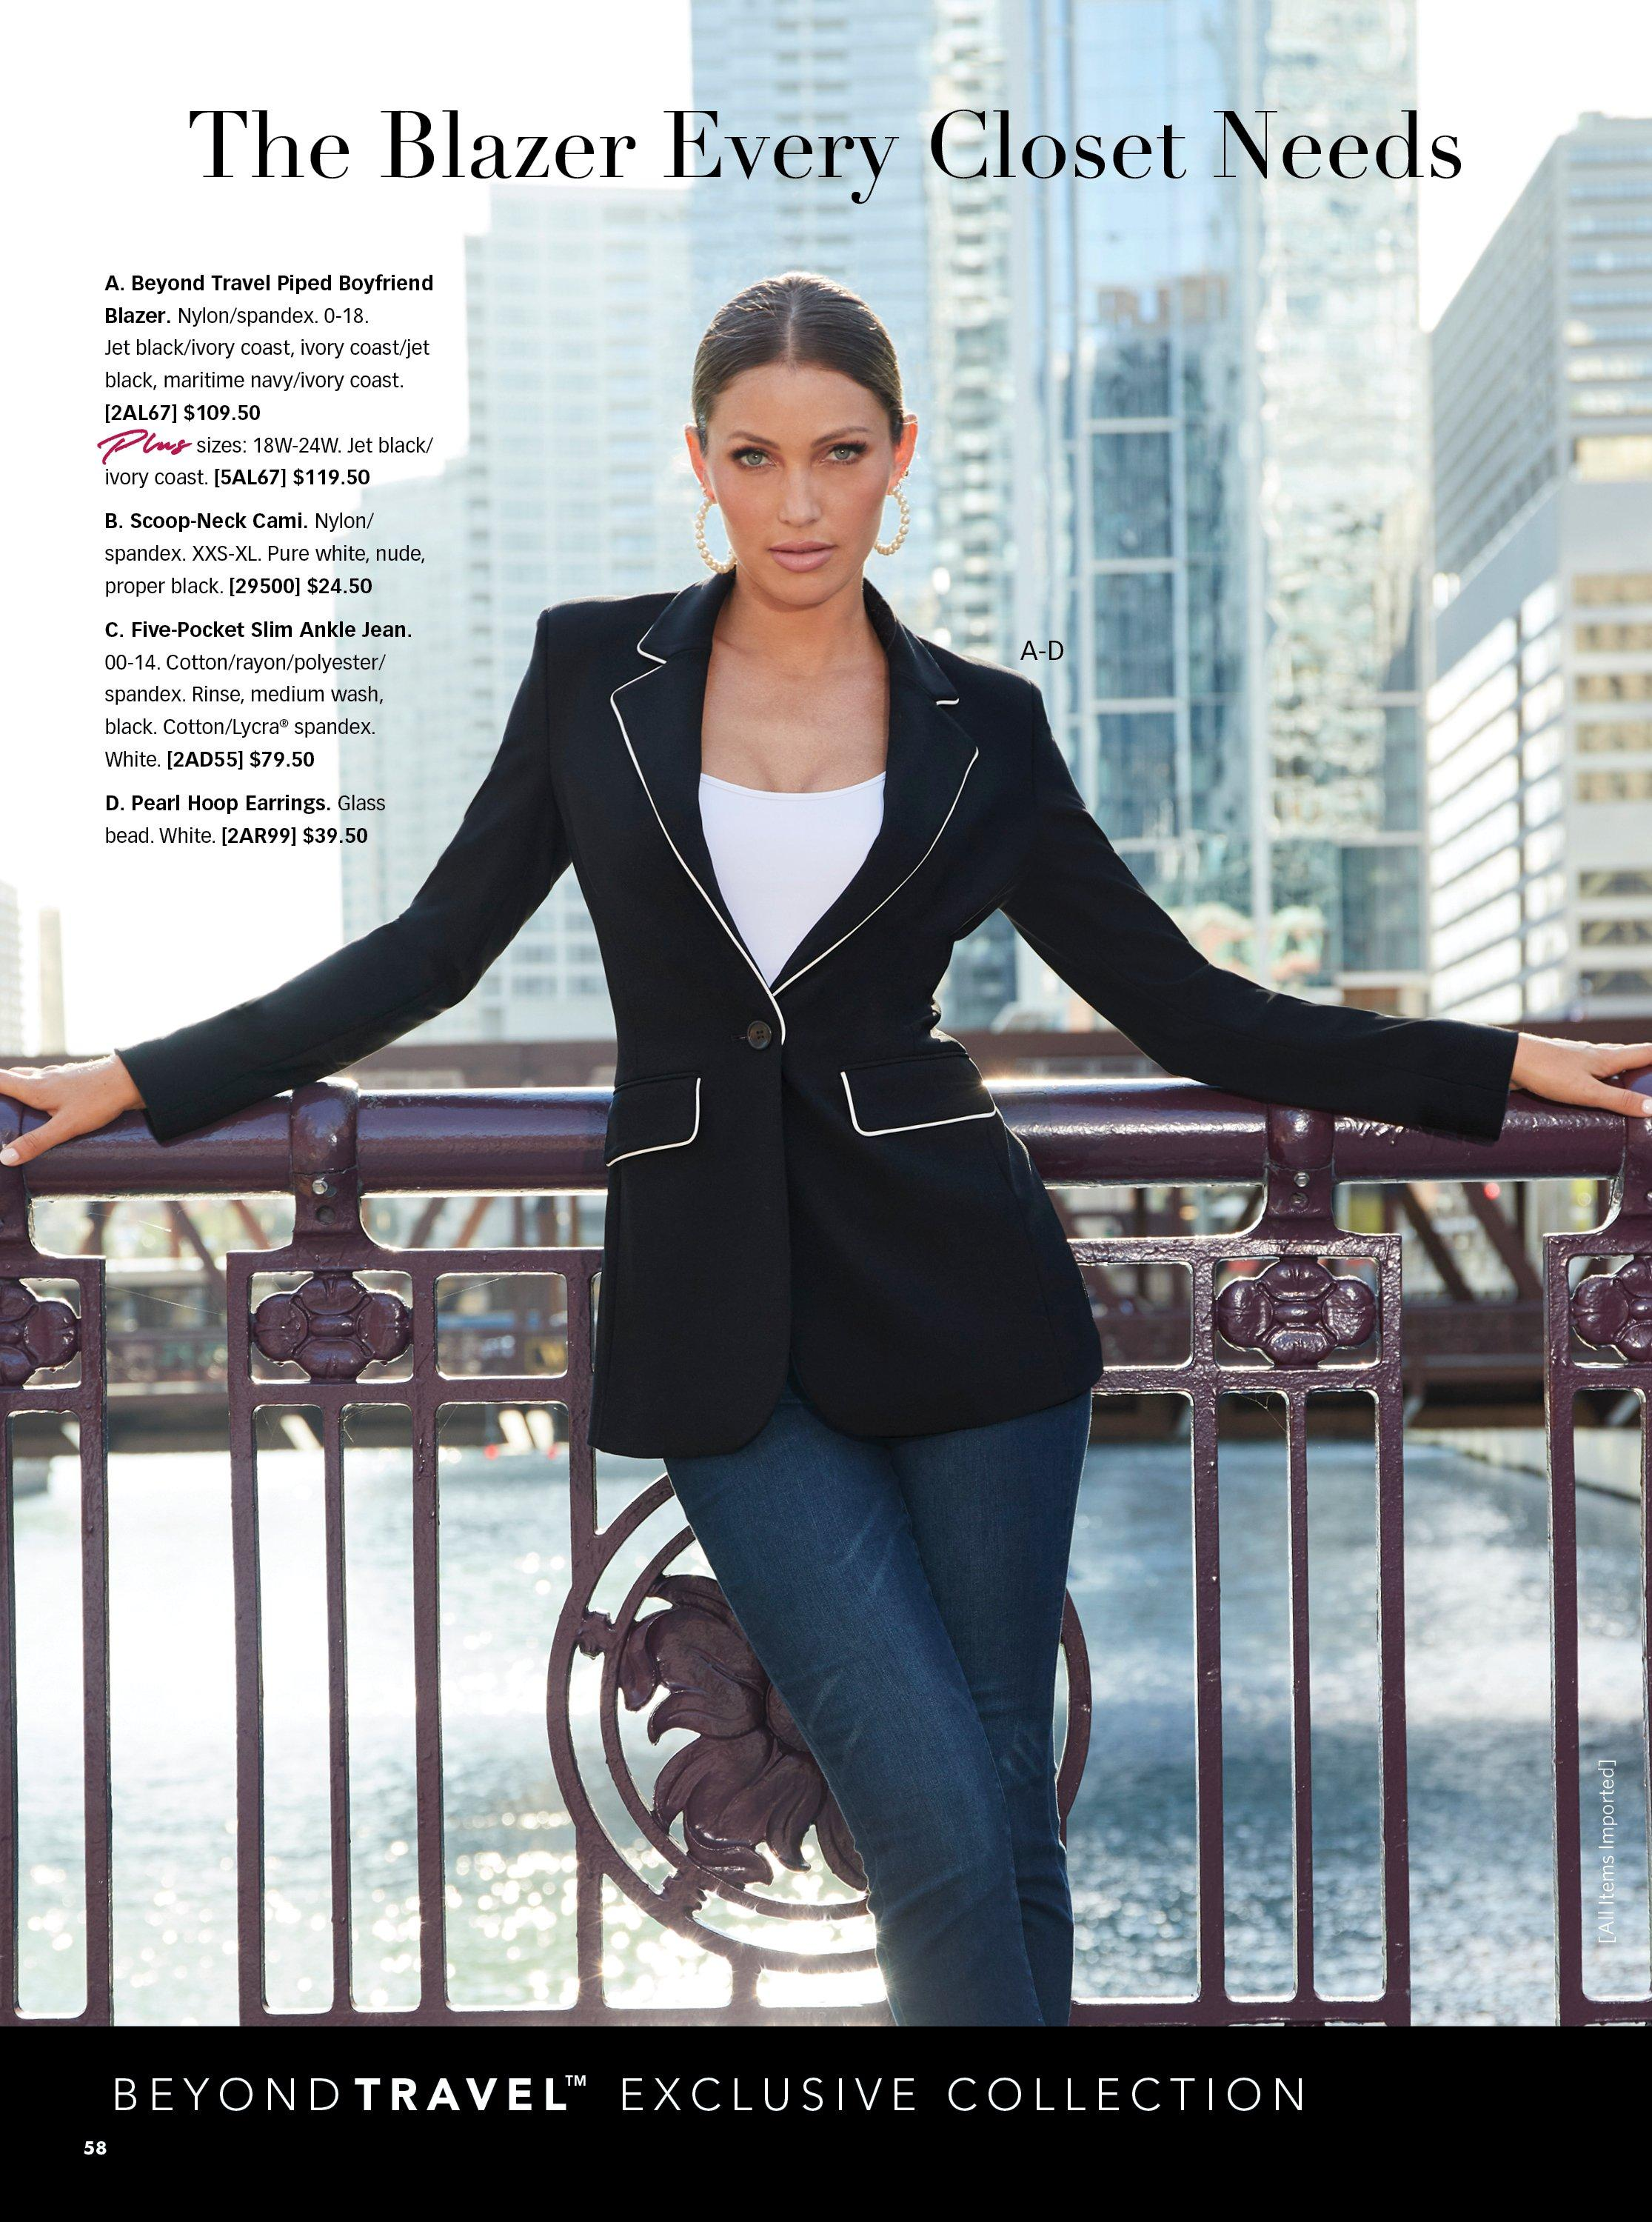 model wearing a black blazer with white piping, white tank top, and jeans.